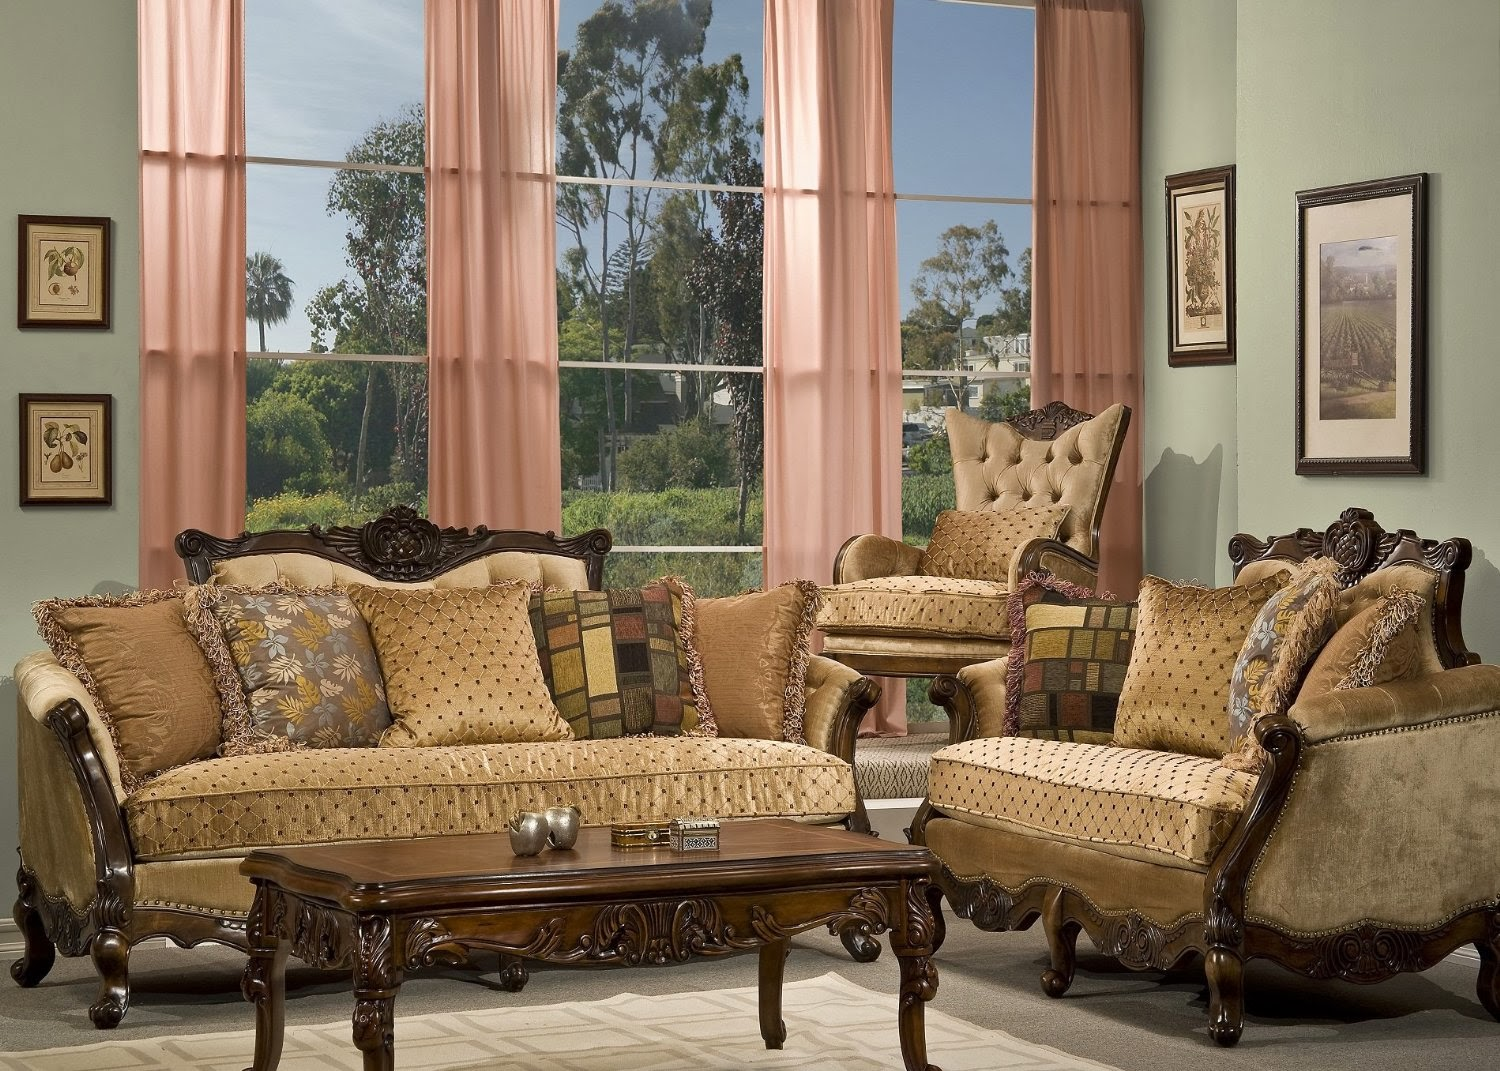 s sofa set recliner with cup holders uk antique victorian